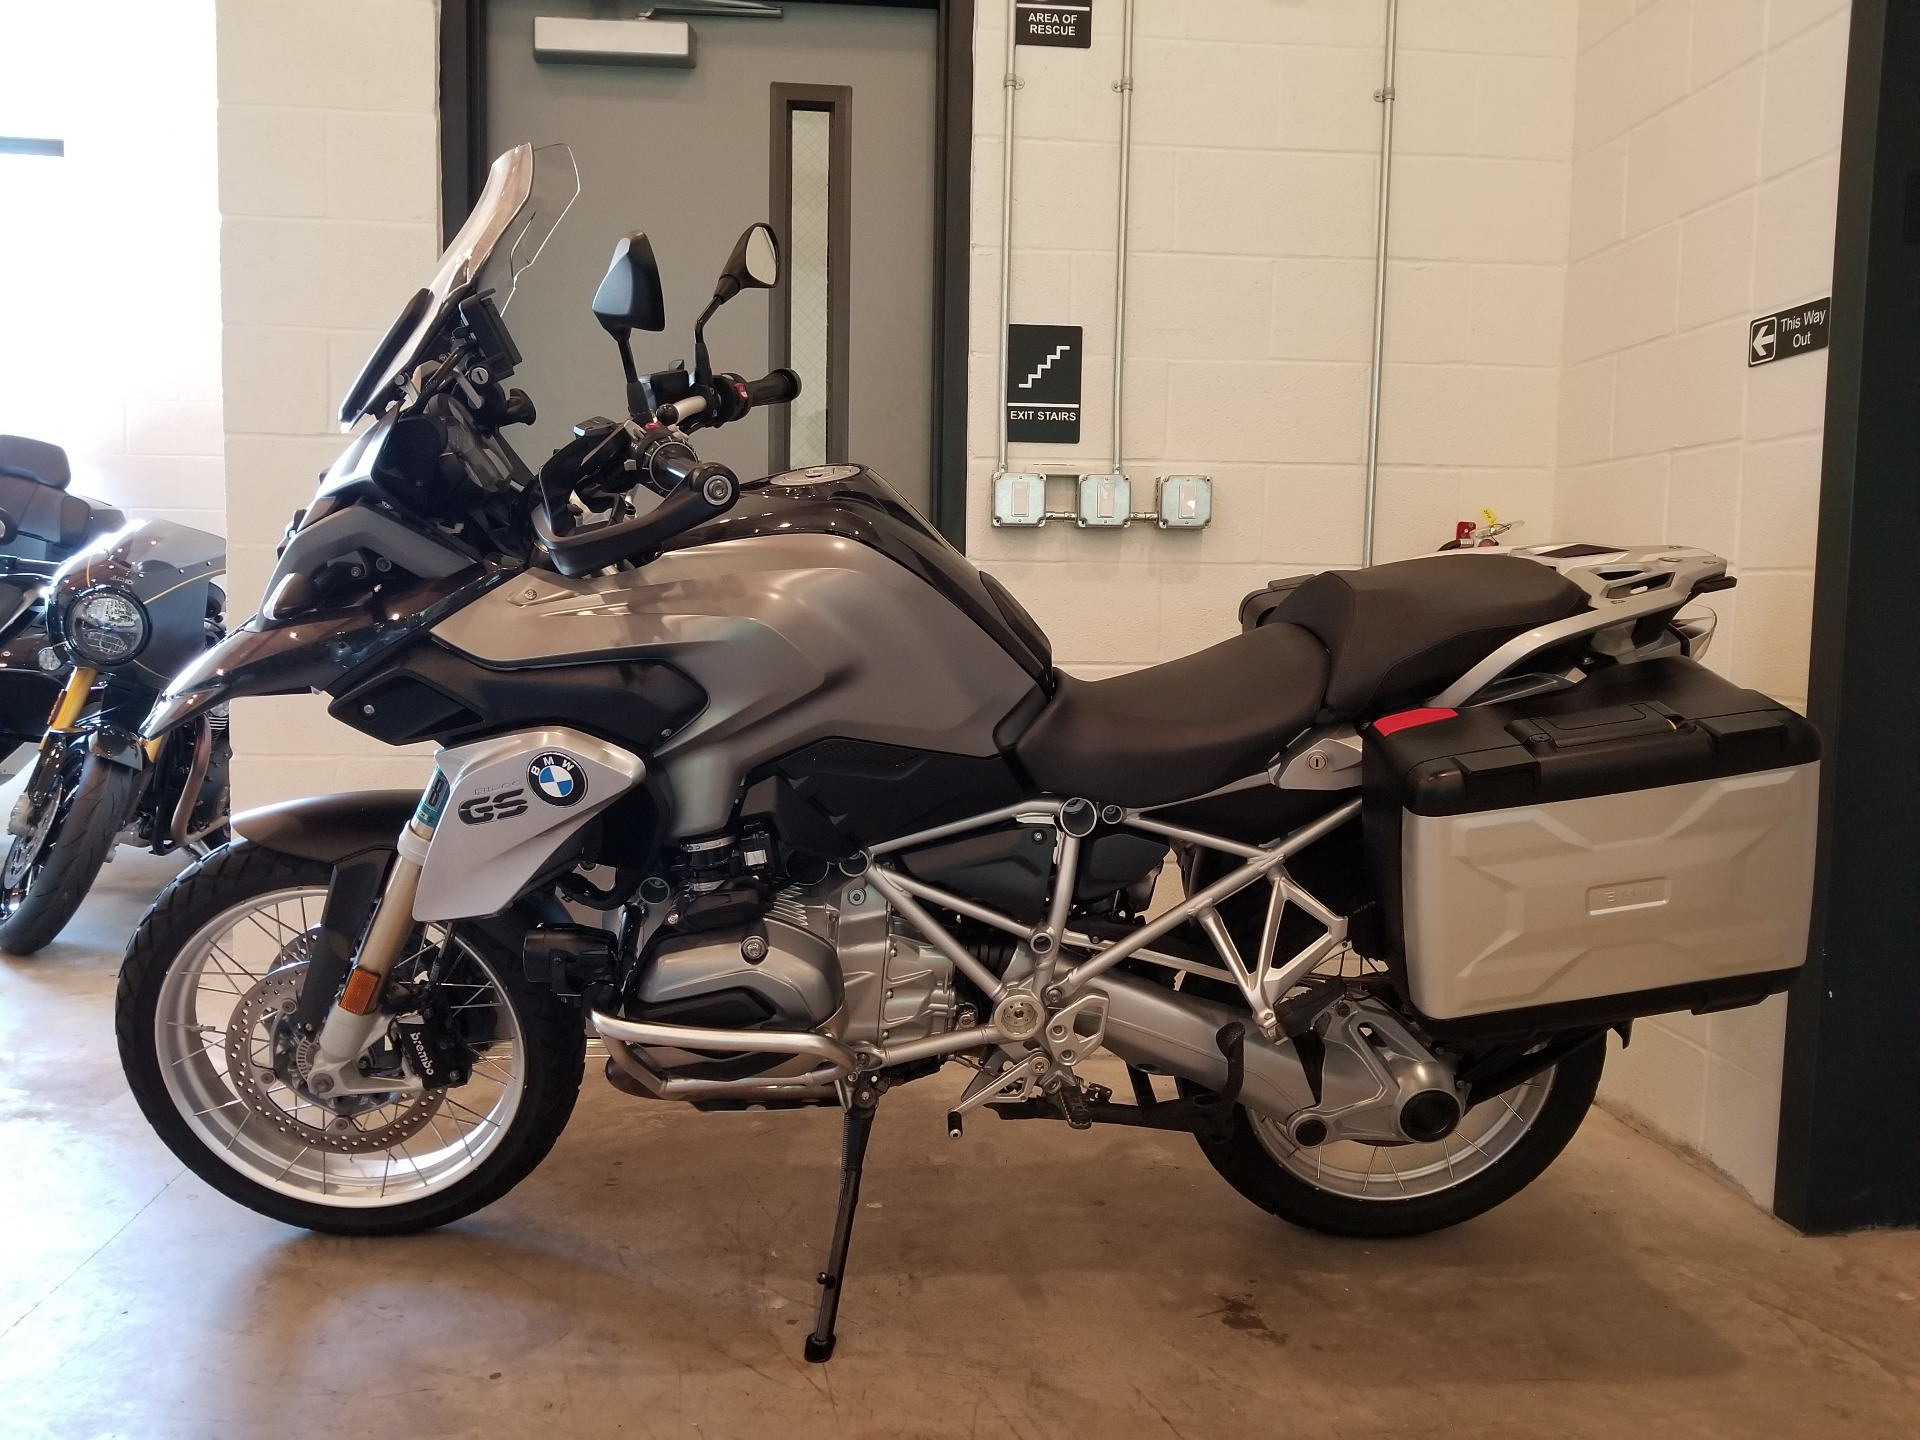 2013 BMW R 1200 GS in Port Clinton, Pennsylvania - Photo 2